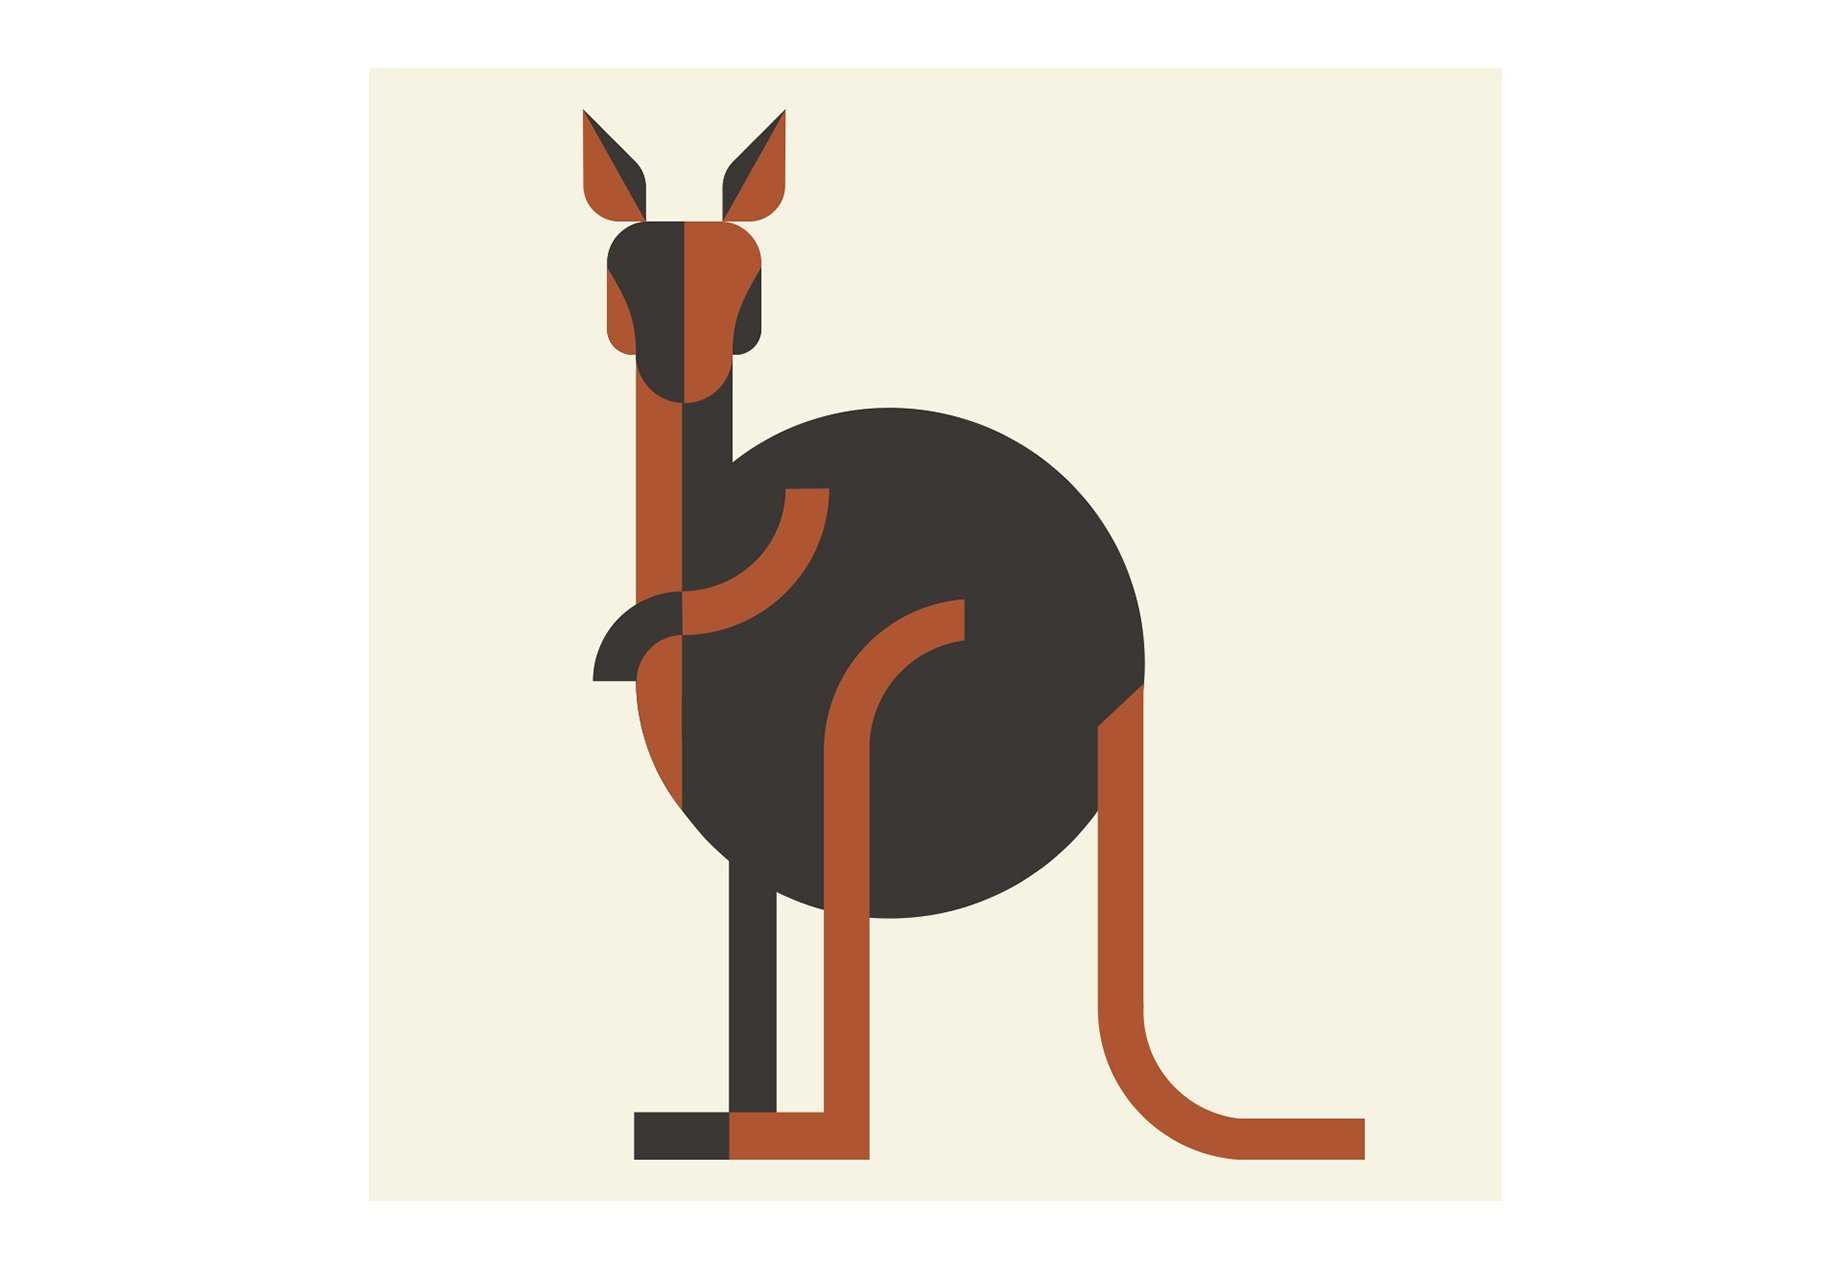 kangaroo-illustration-alice-iuri